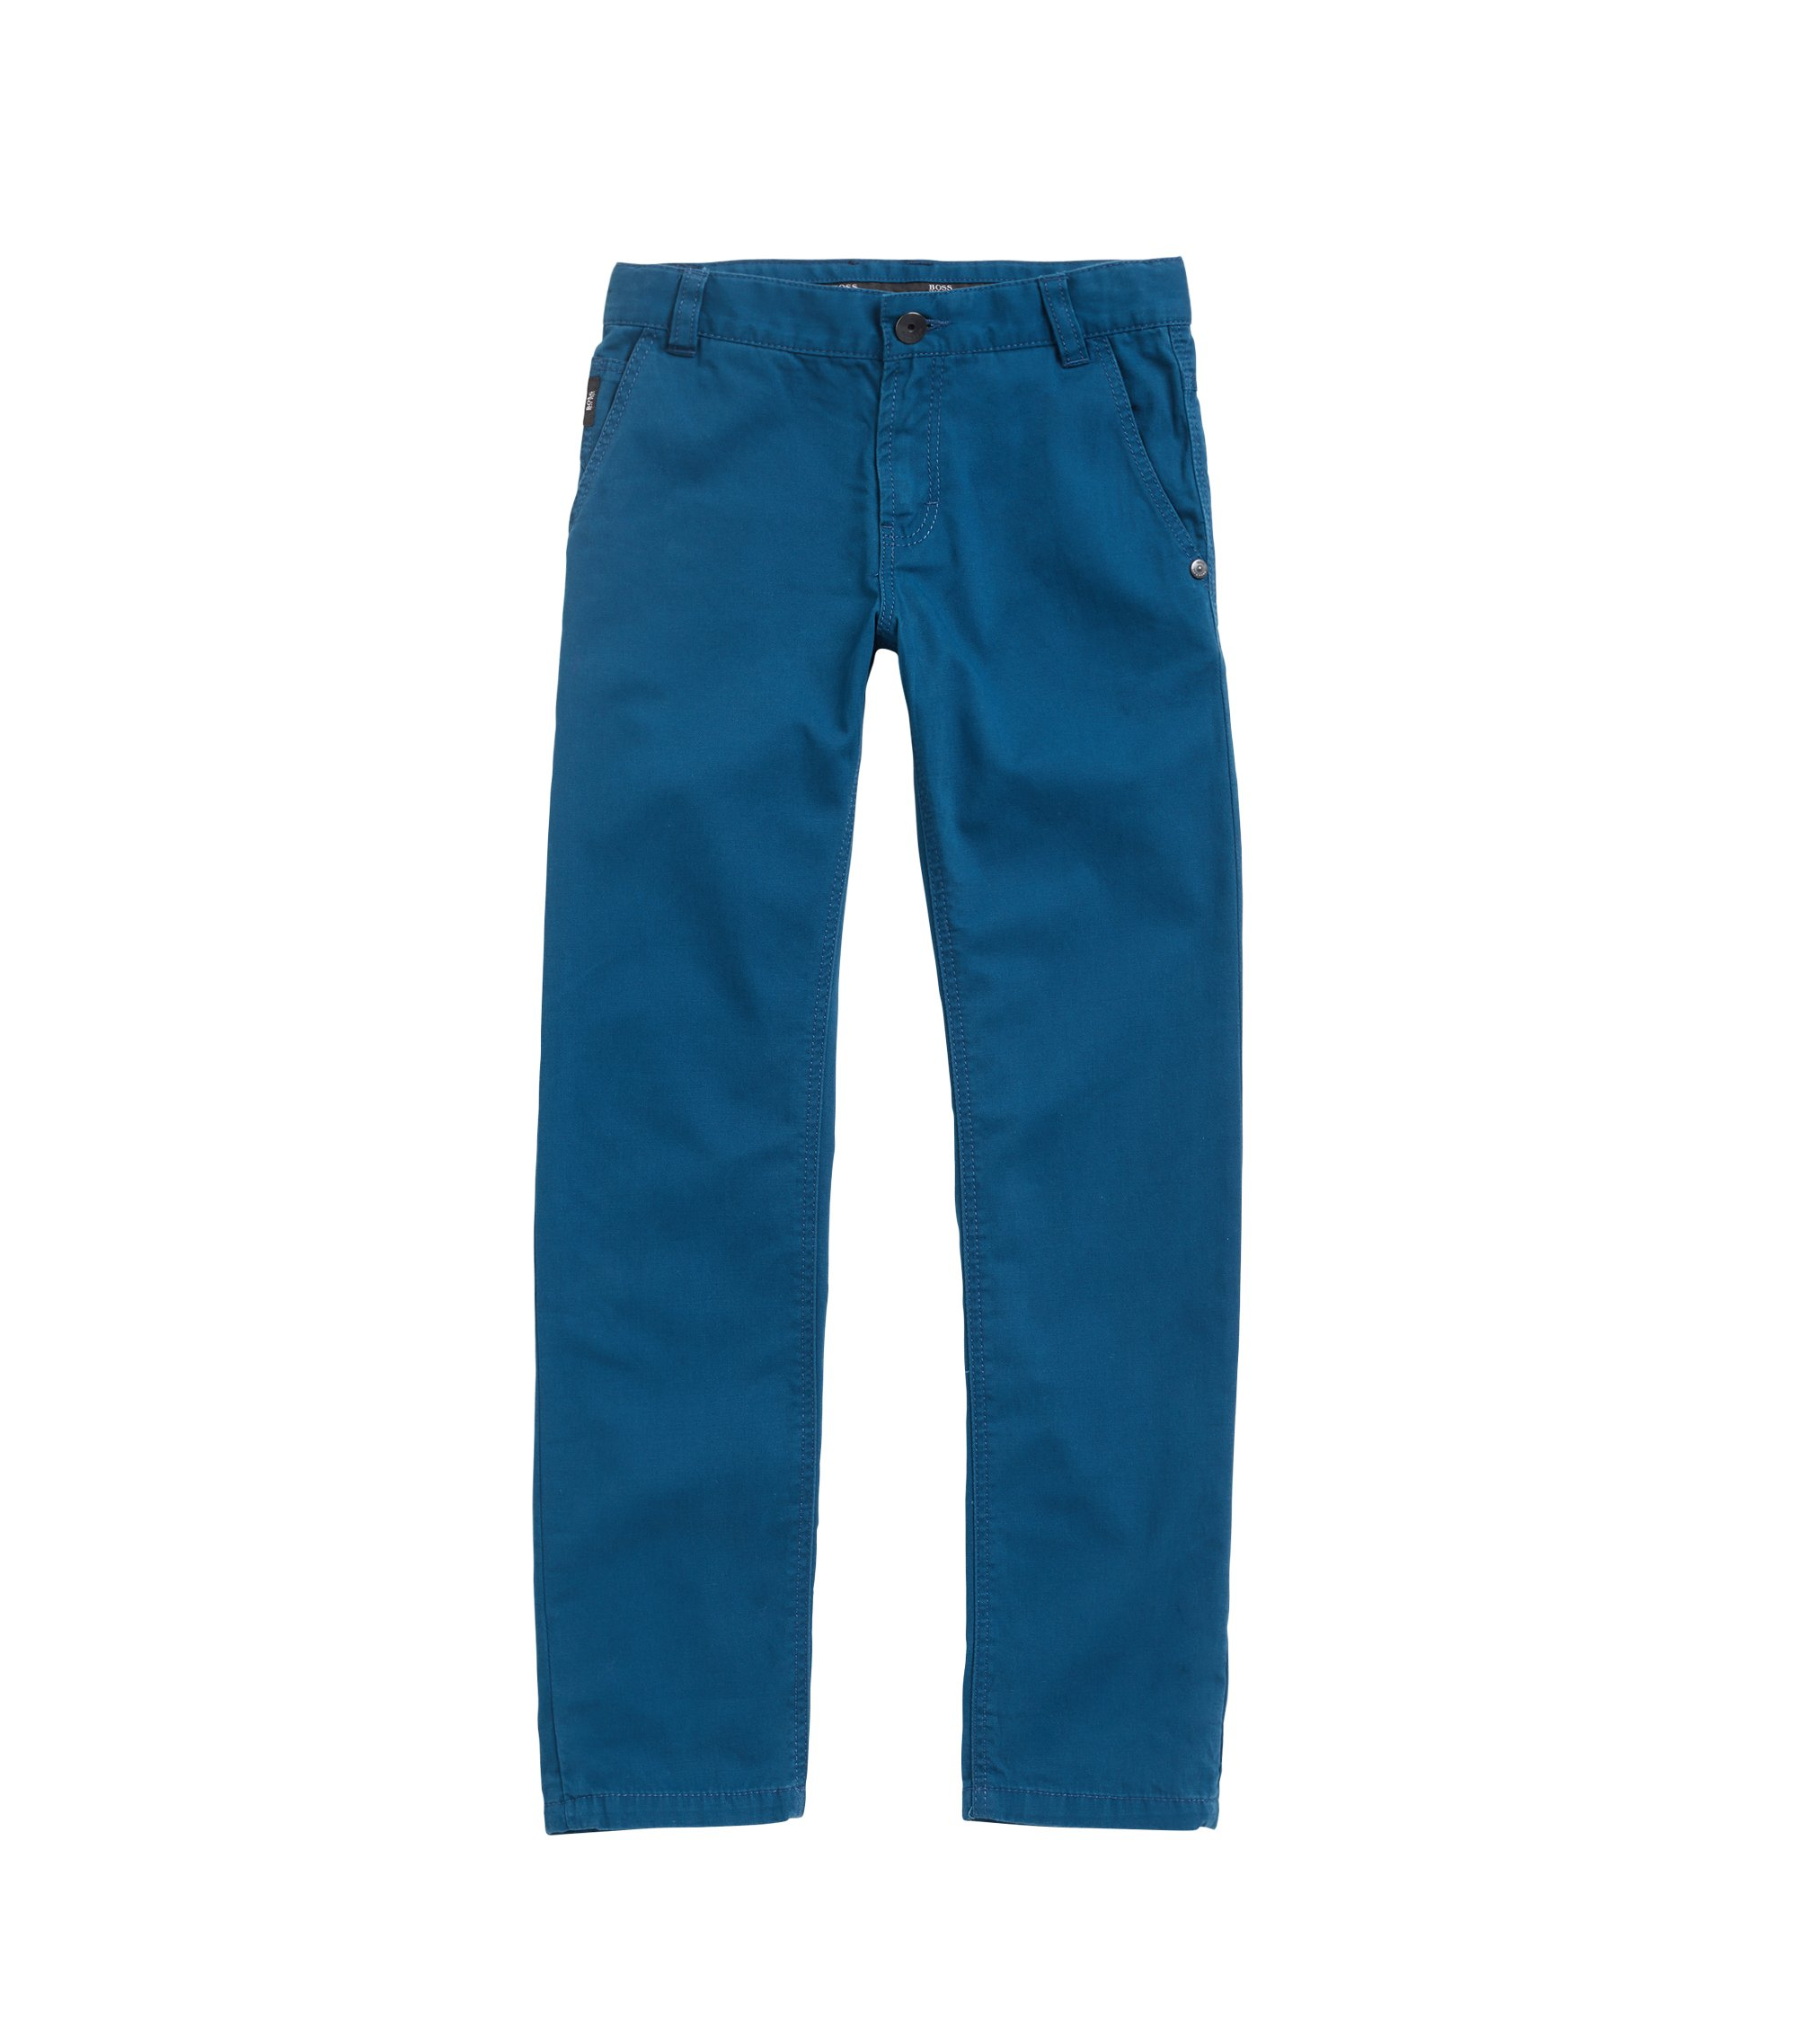 Kids' trousers in cotton twill with leather flag label, Blue